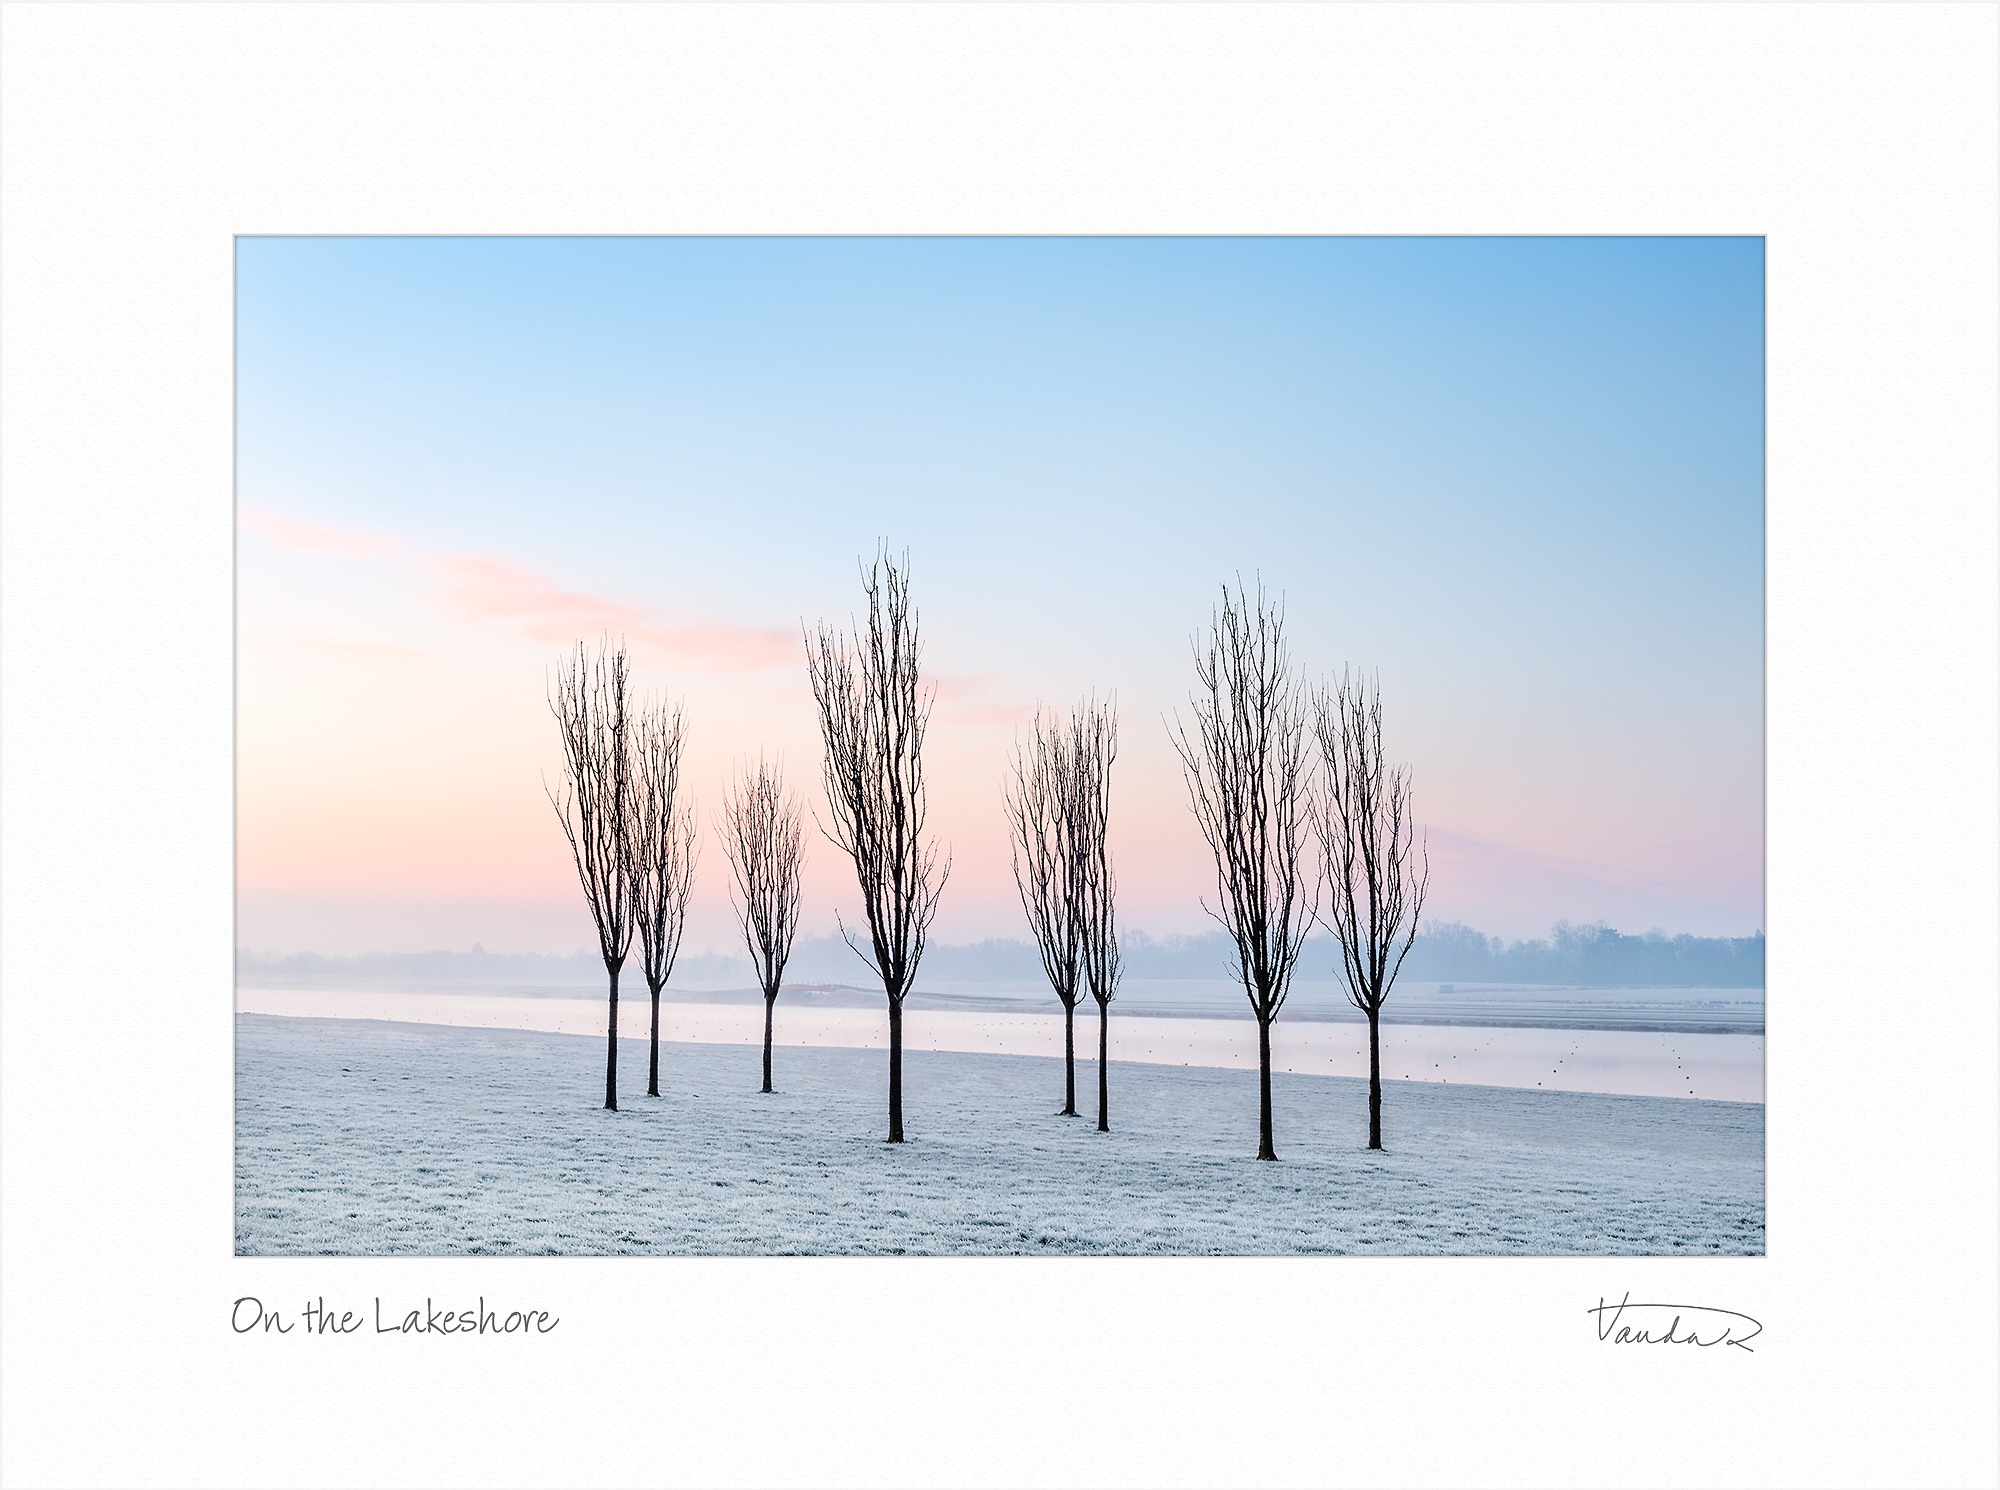 On the Lakeshore